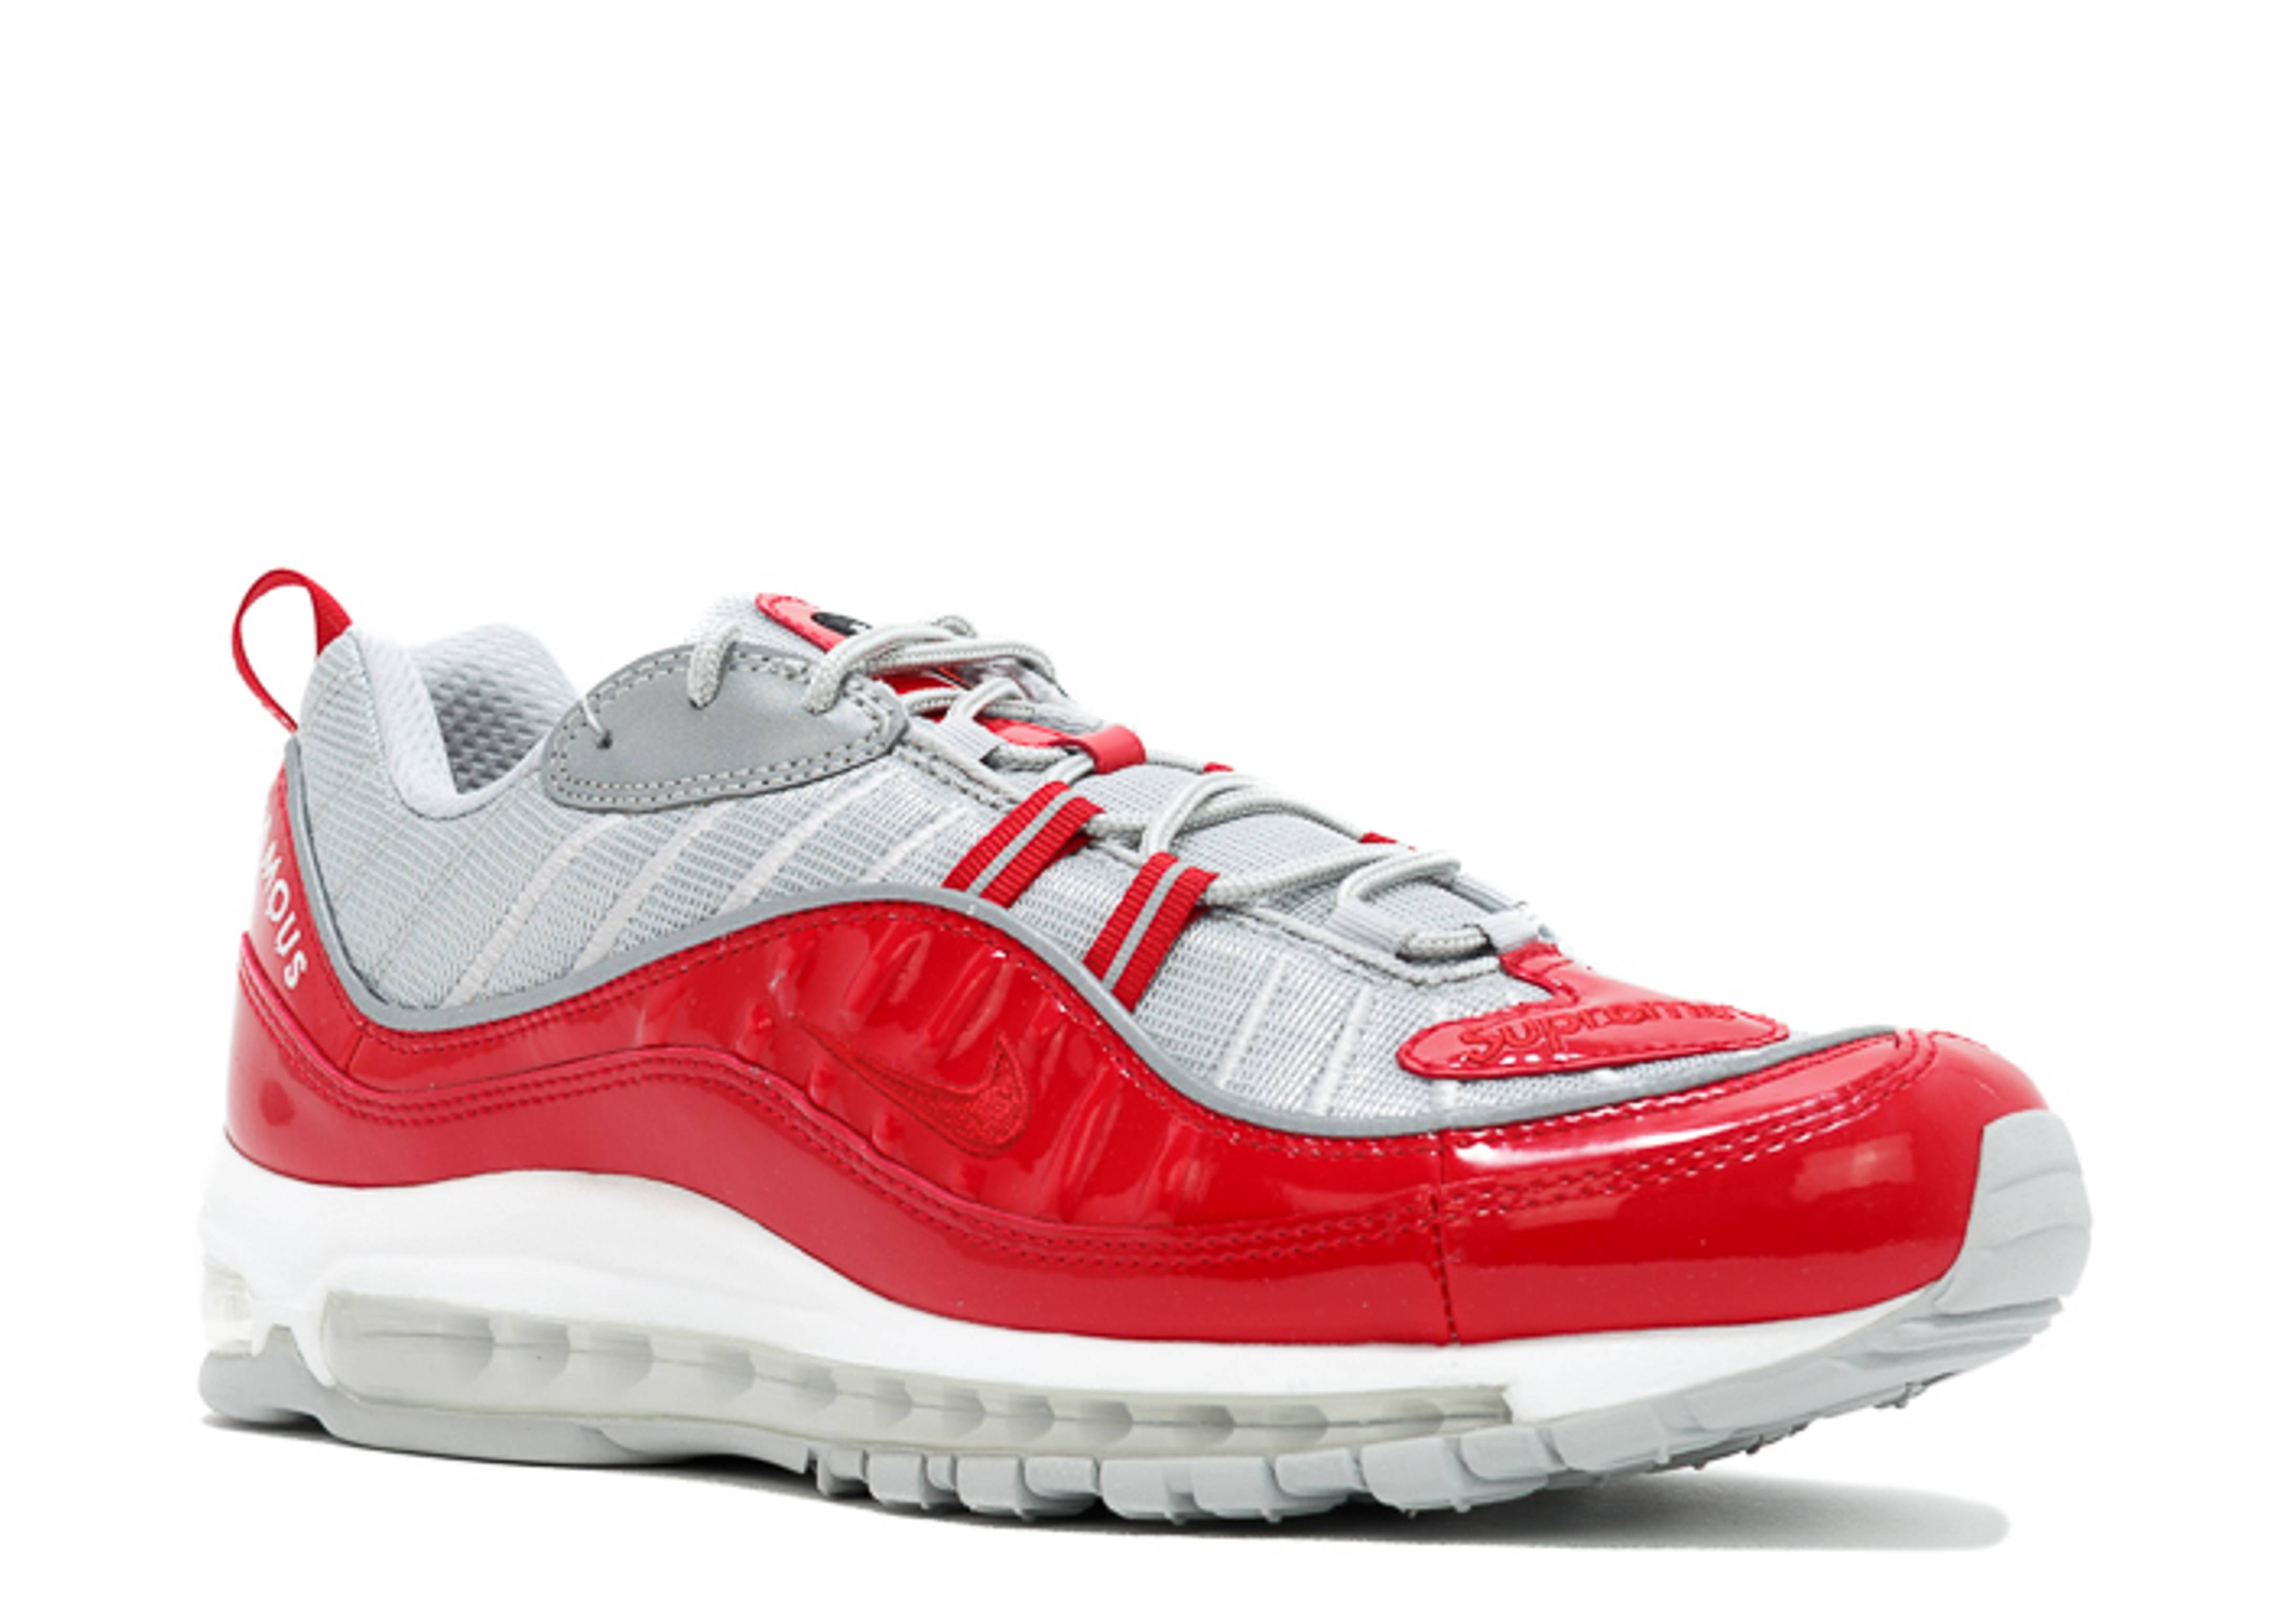 new style 1d190 bfbdd and cheap nike air max 95 white comet red og mens running shoes 609048 100  0h394yfz8  air max 98 supreme supreme